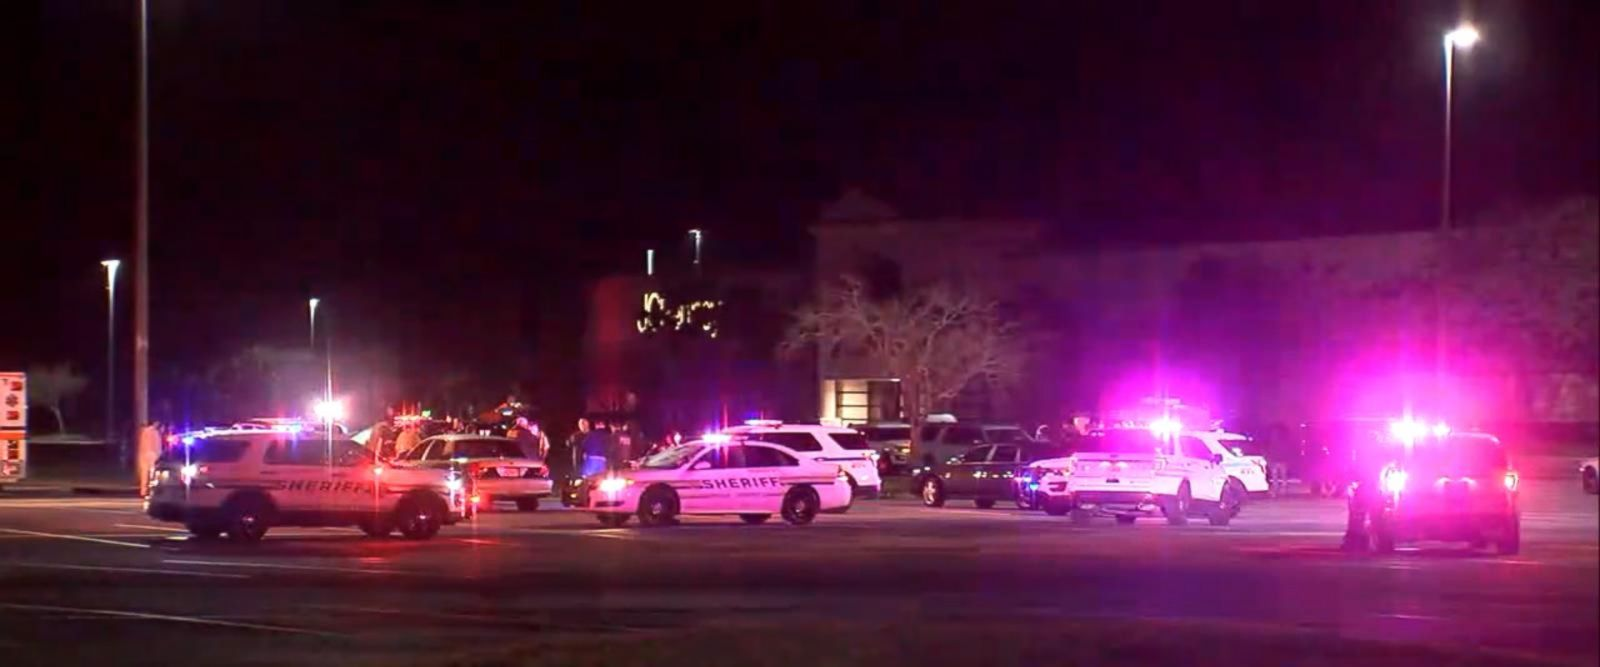 VIDEO: Two improvised explosive devices detonated in the corridor of a mall in Lake Wales, Florida, Sunday evening, authorities said.